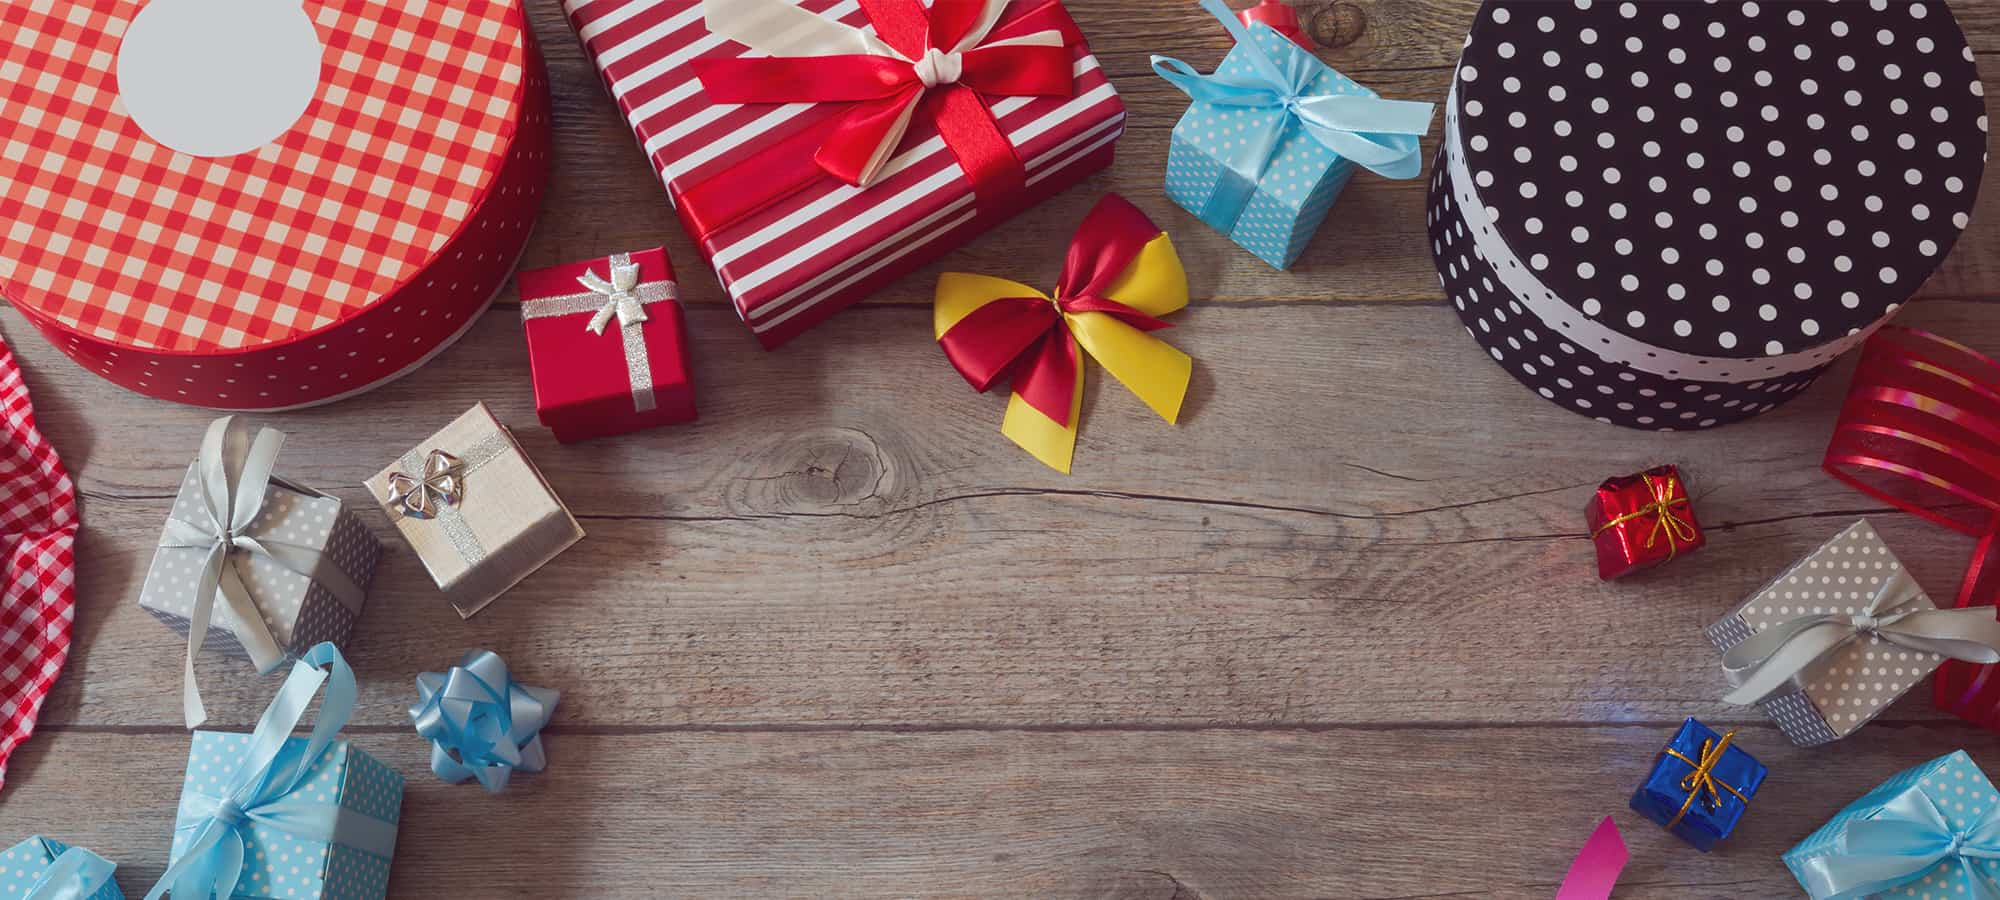 Four Gift-Buying Tips for the Christmas Season